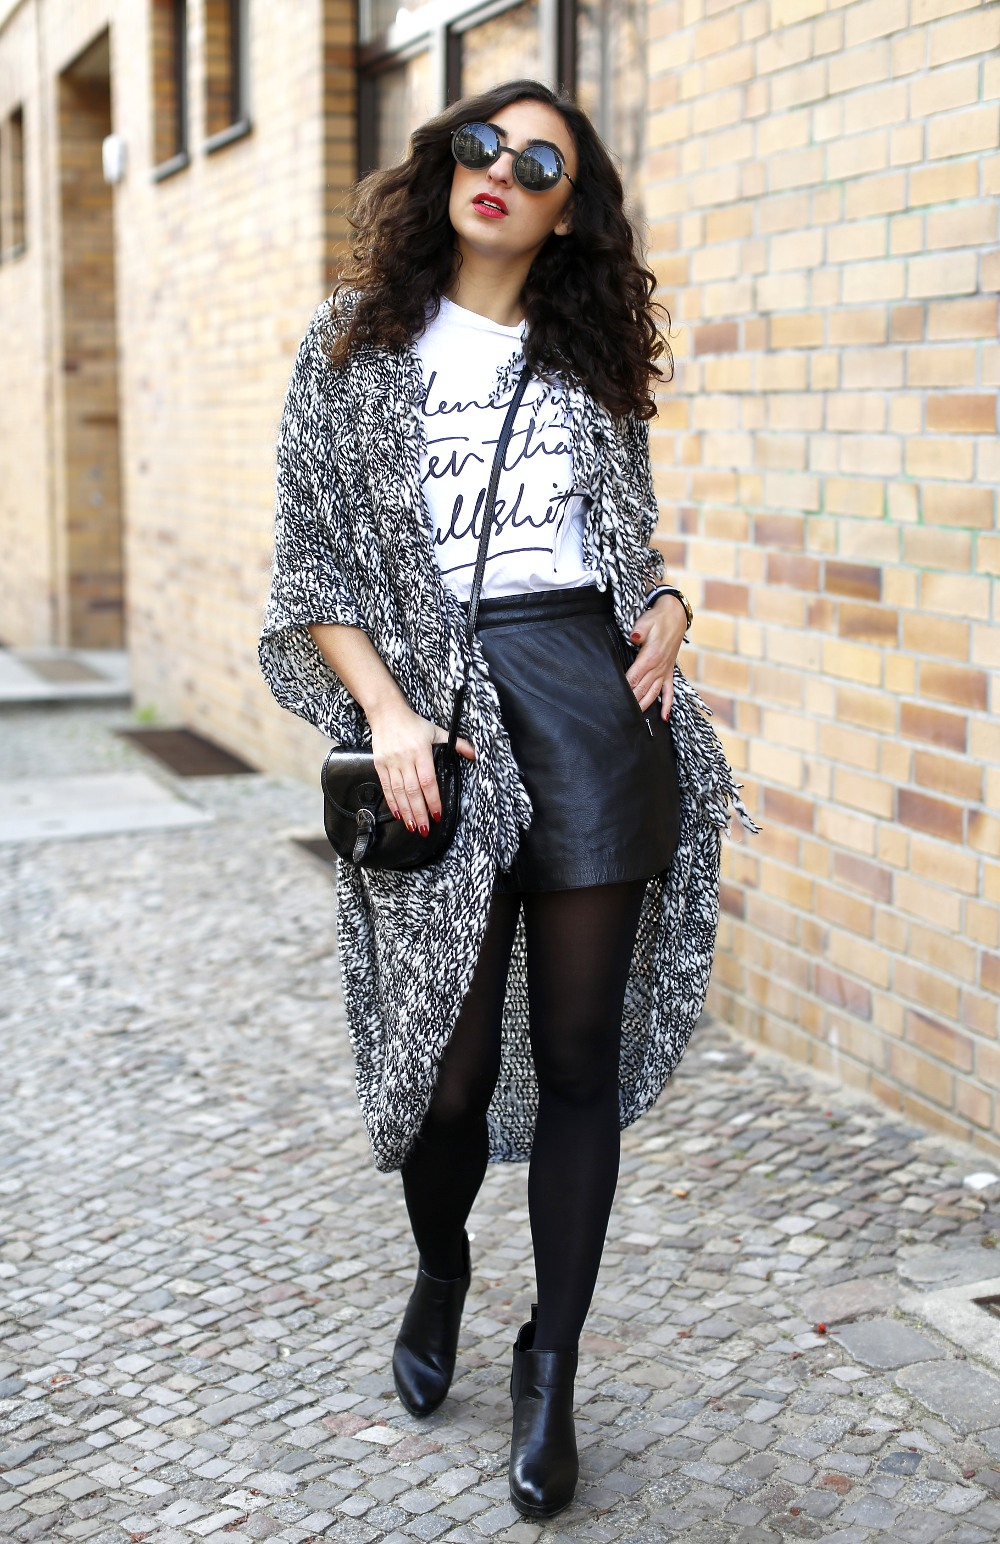 esprit long cardigan outfit black and white look black leather skirt streetstyle berlin look motto shirt blogger samieze fashionblogger lookbook RED instagram outfit